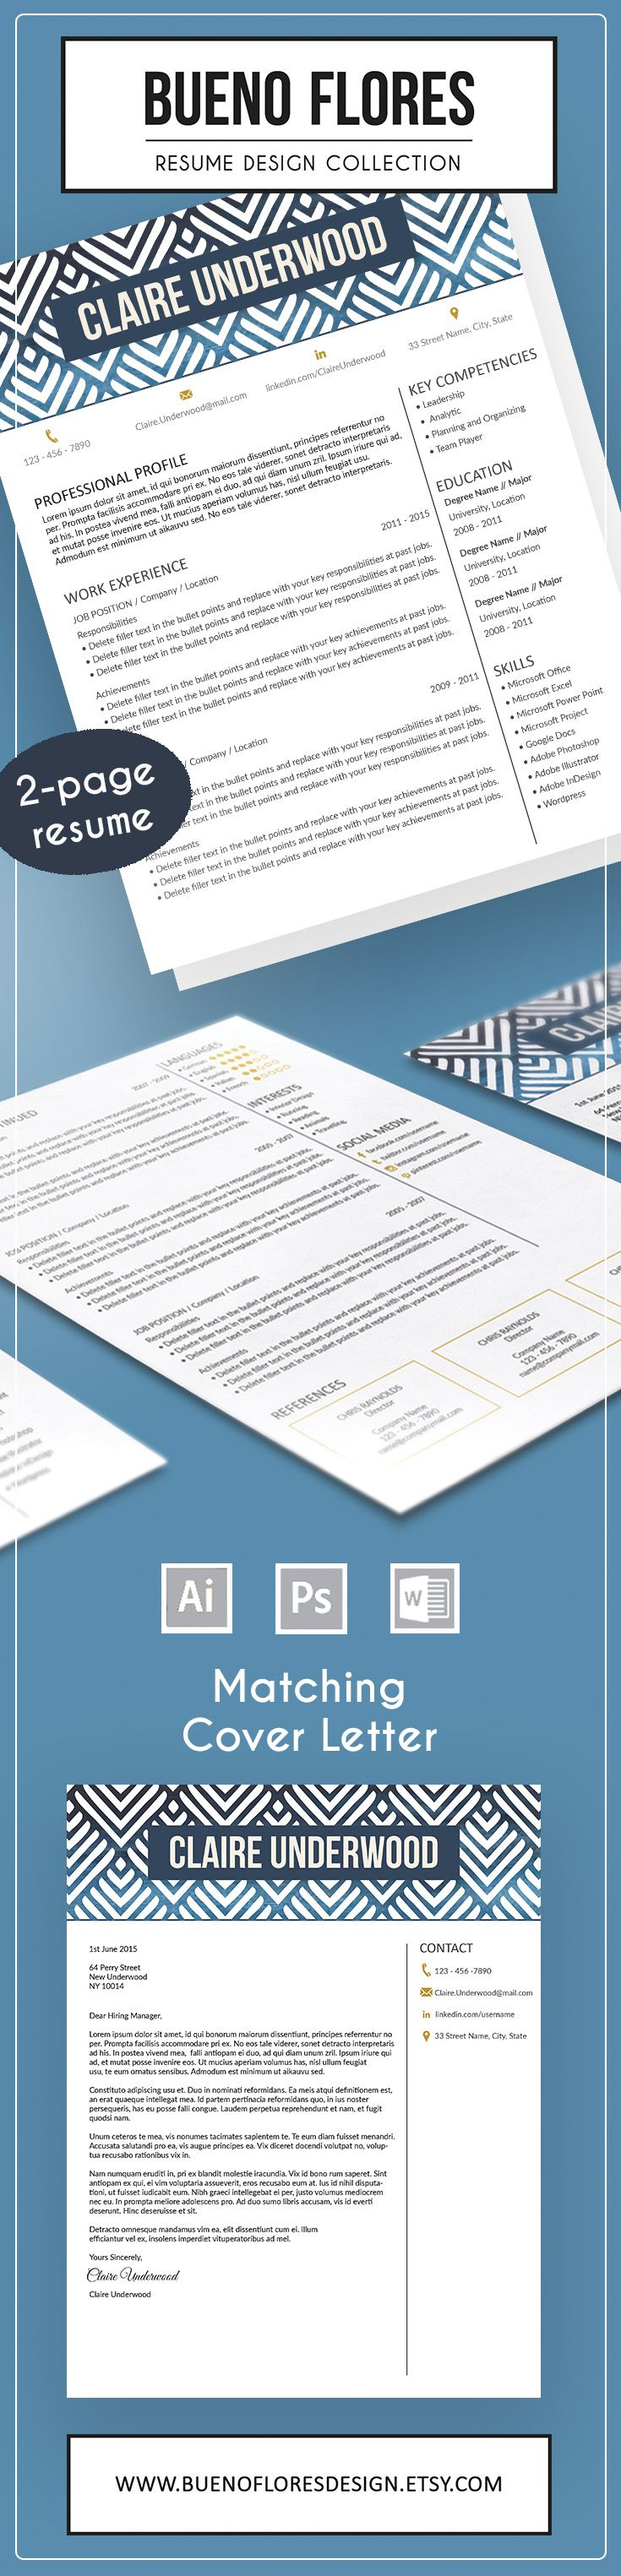 """Creative Resume Template """"Claire Underwood"""", a feminine 2 page resume design with maching cover letter and 20 different icons. Free login organizer with every purchase. Buy 2 for only $22. #resume design #resume template"""